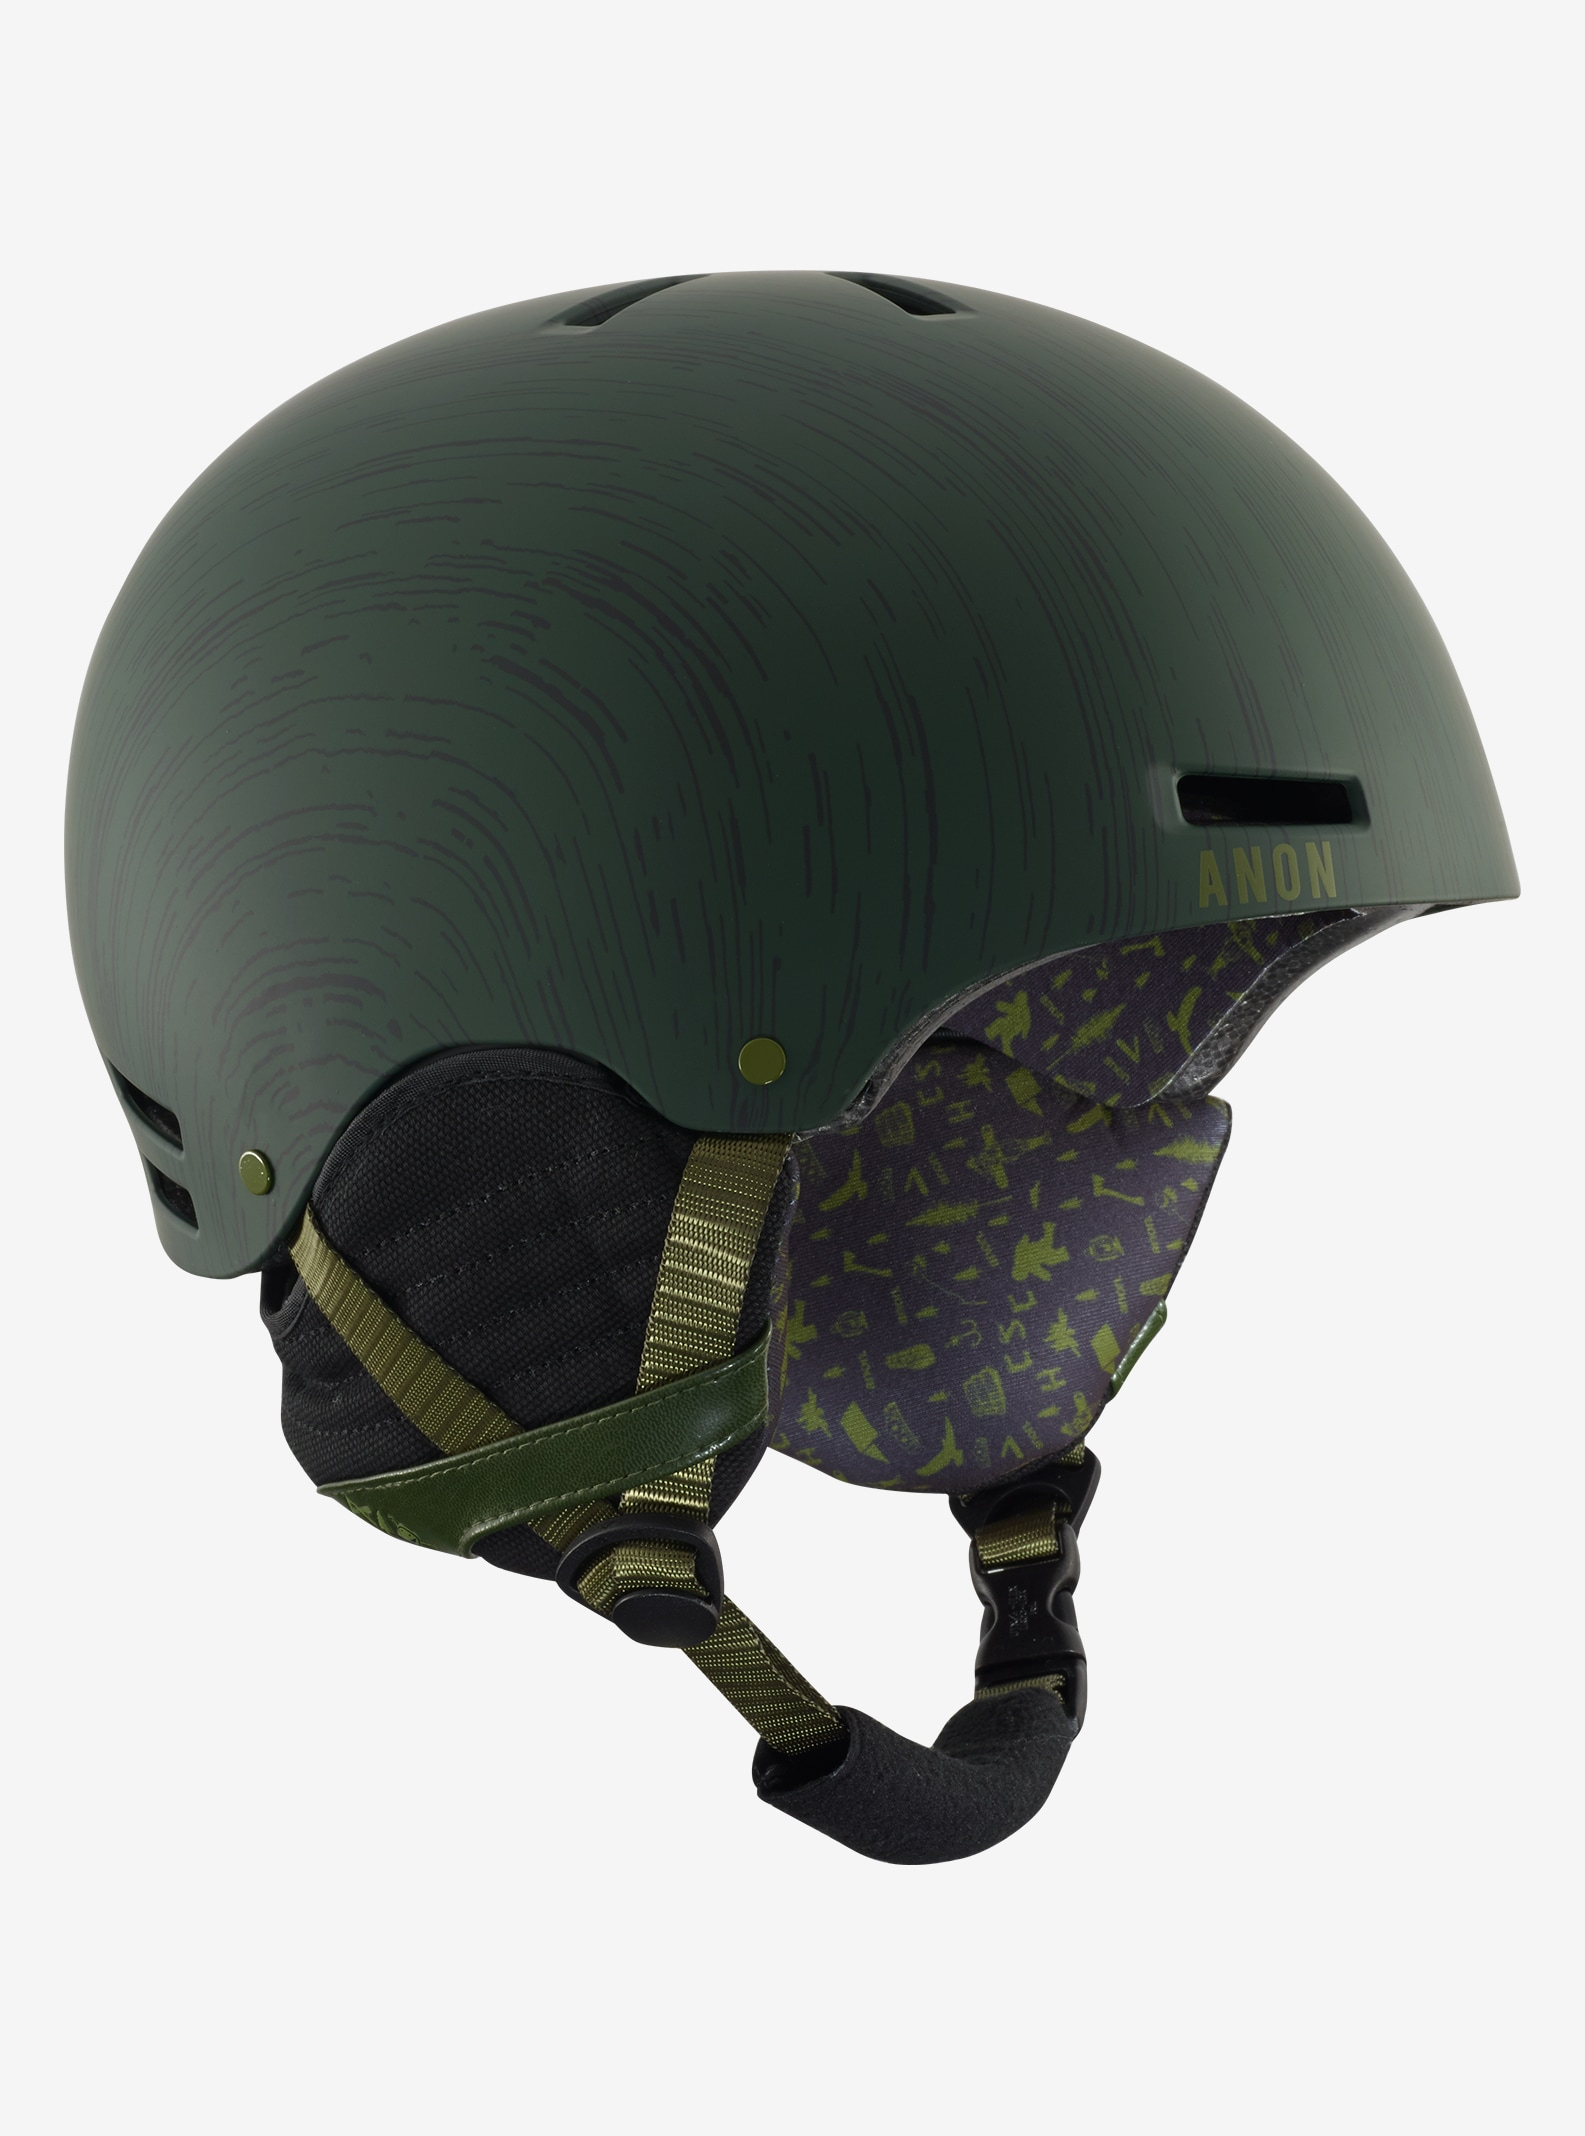 Men's HCSC x Anon Raider Helmet shown in HCSC - Coalition